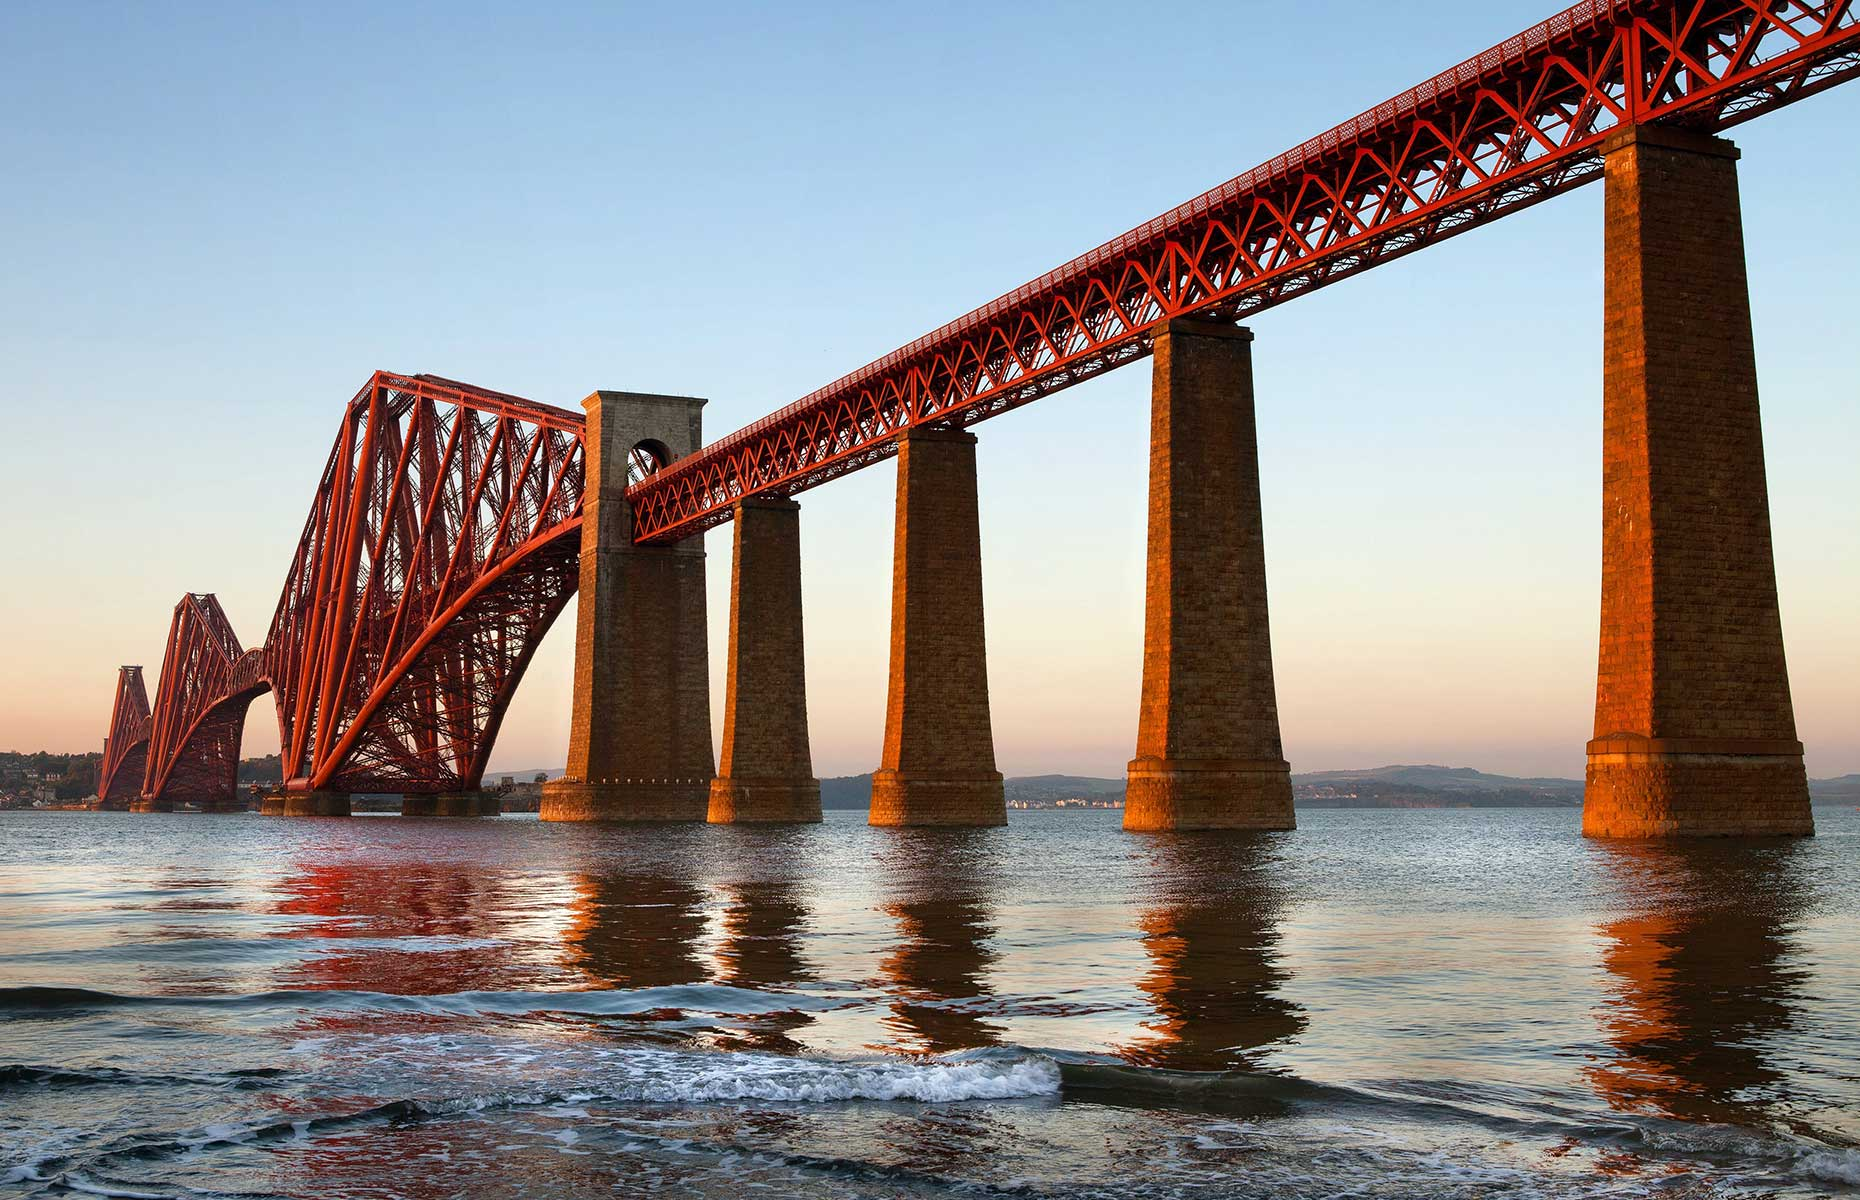 The Forth Bridge  (Image: Claire Fraser Photography/Shutterstock)